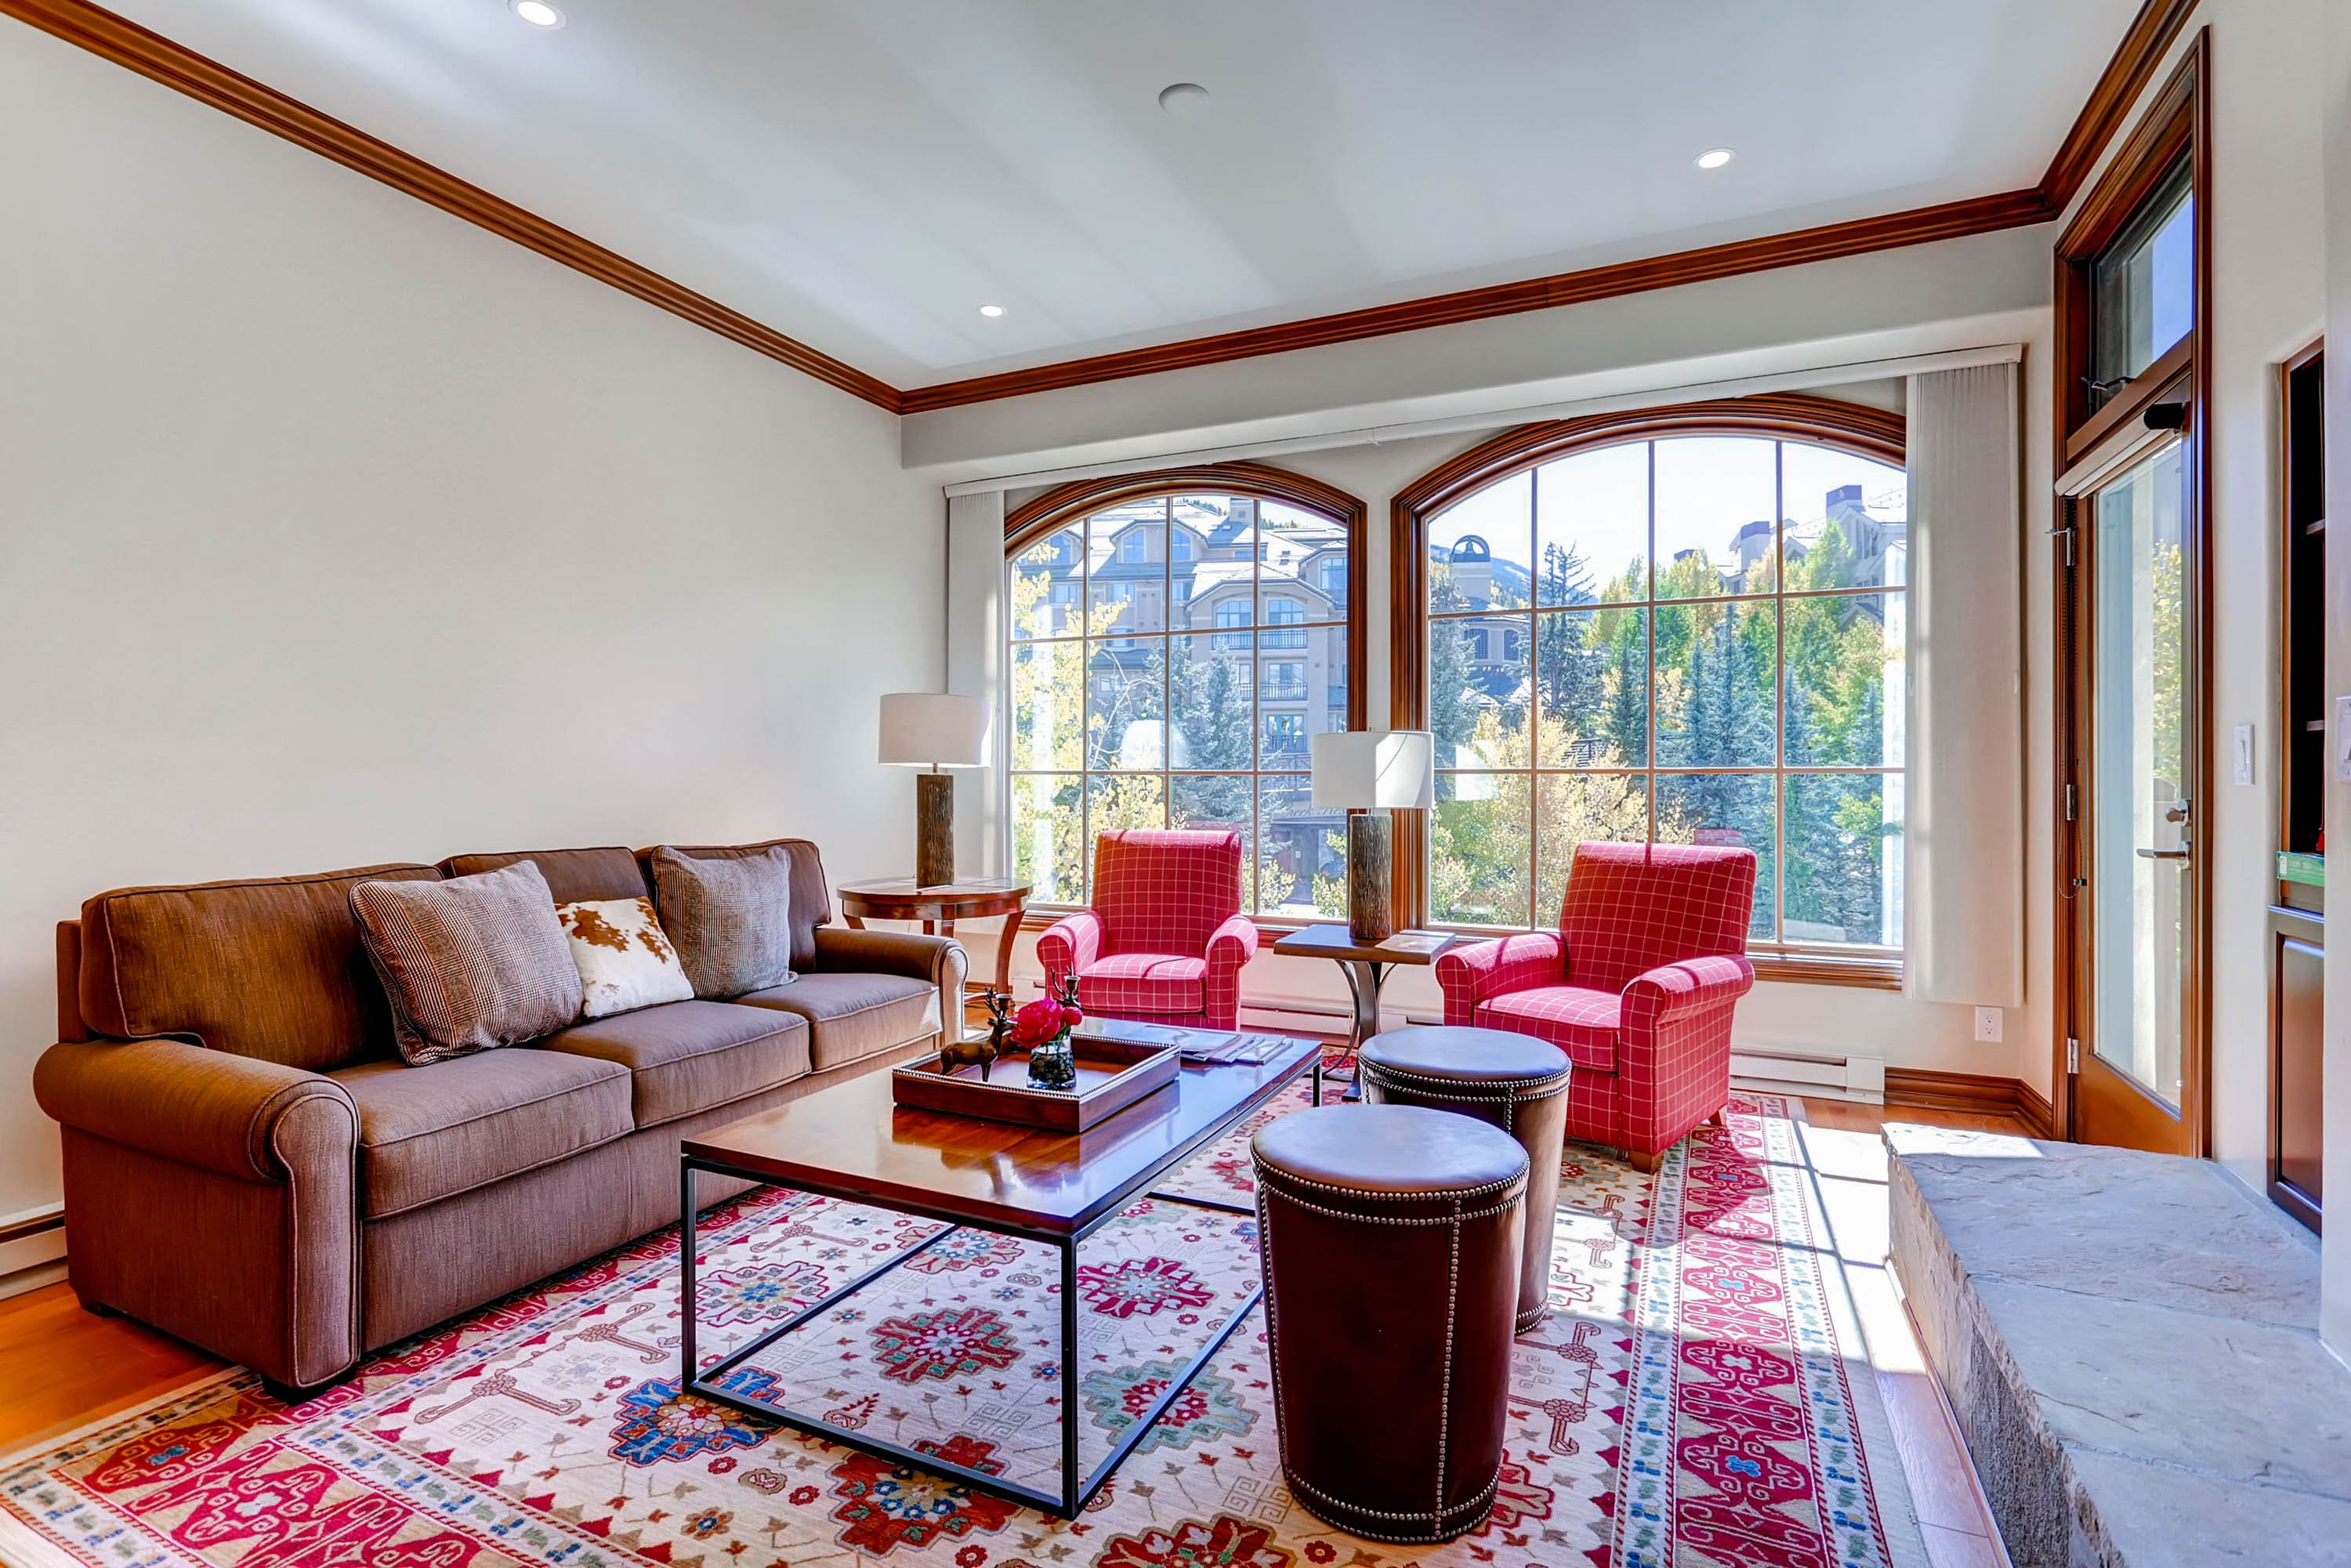 Property Image 1 - Sophisticated Light Filled Condo in Beaver Creek